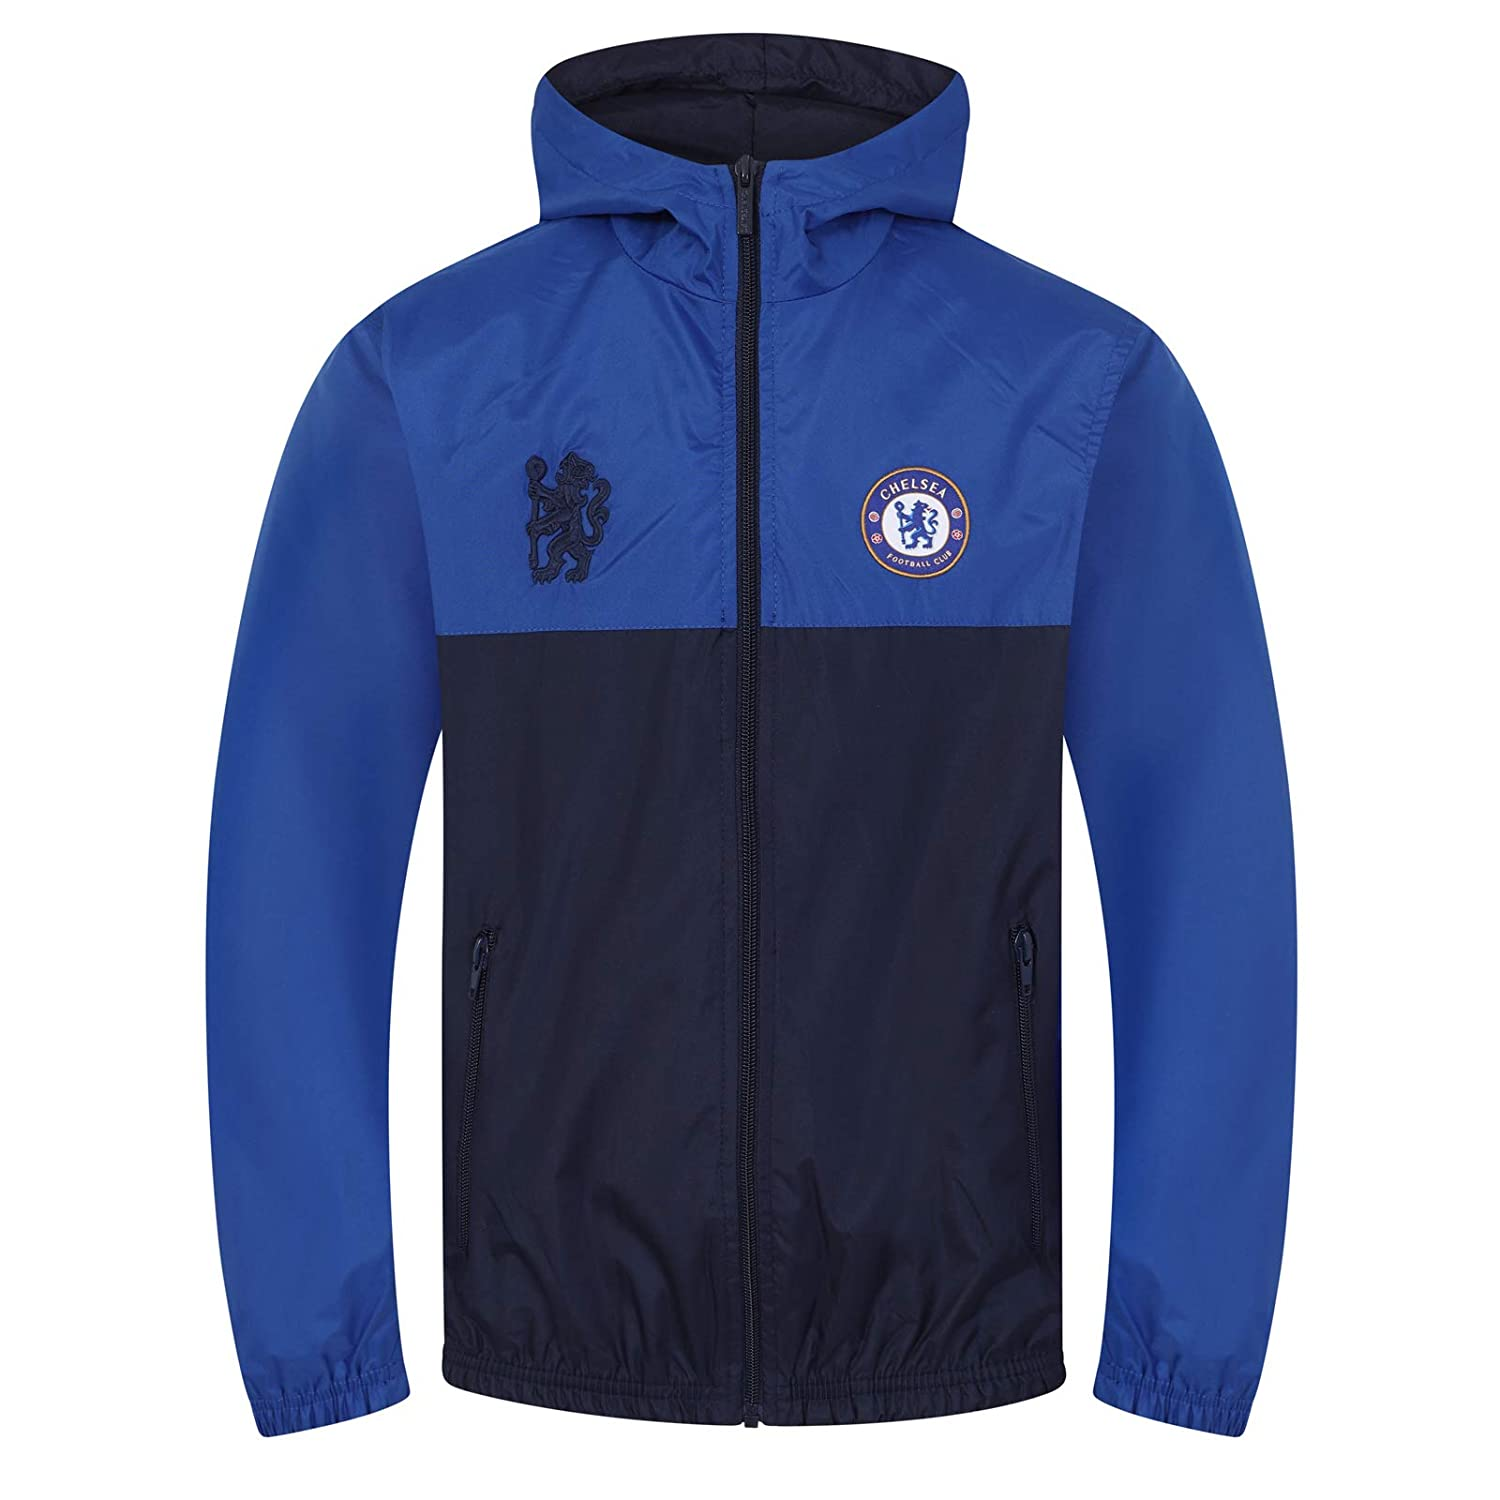 Chelsea FC Official Football Gift Boys Shower Jacket Windbreaker